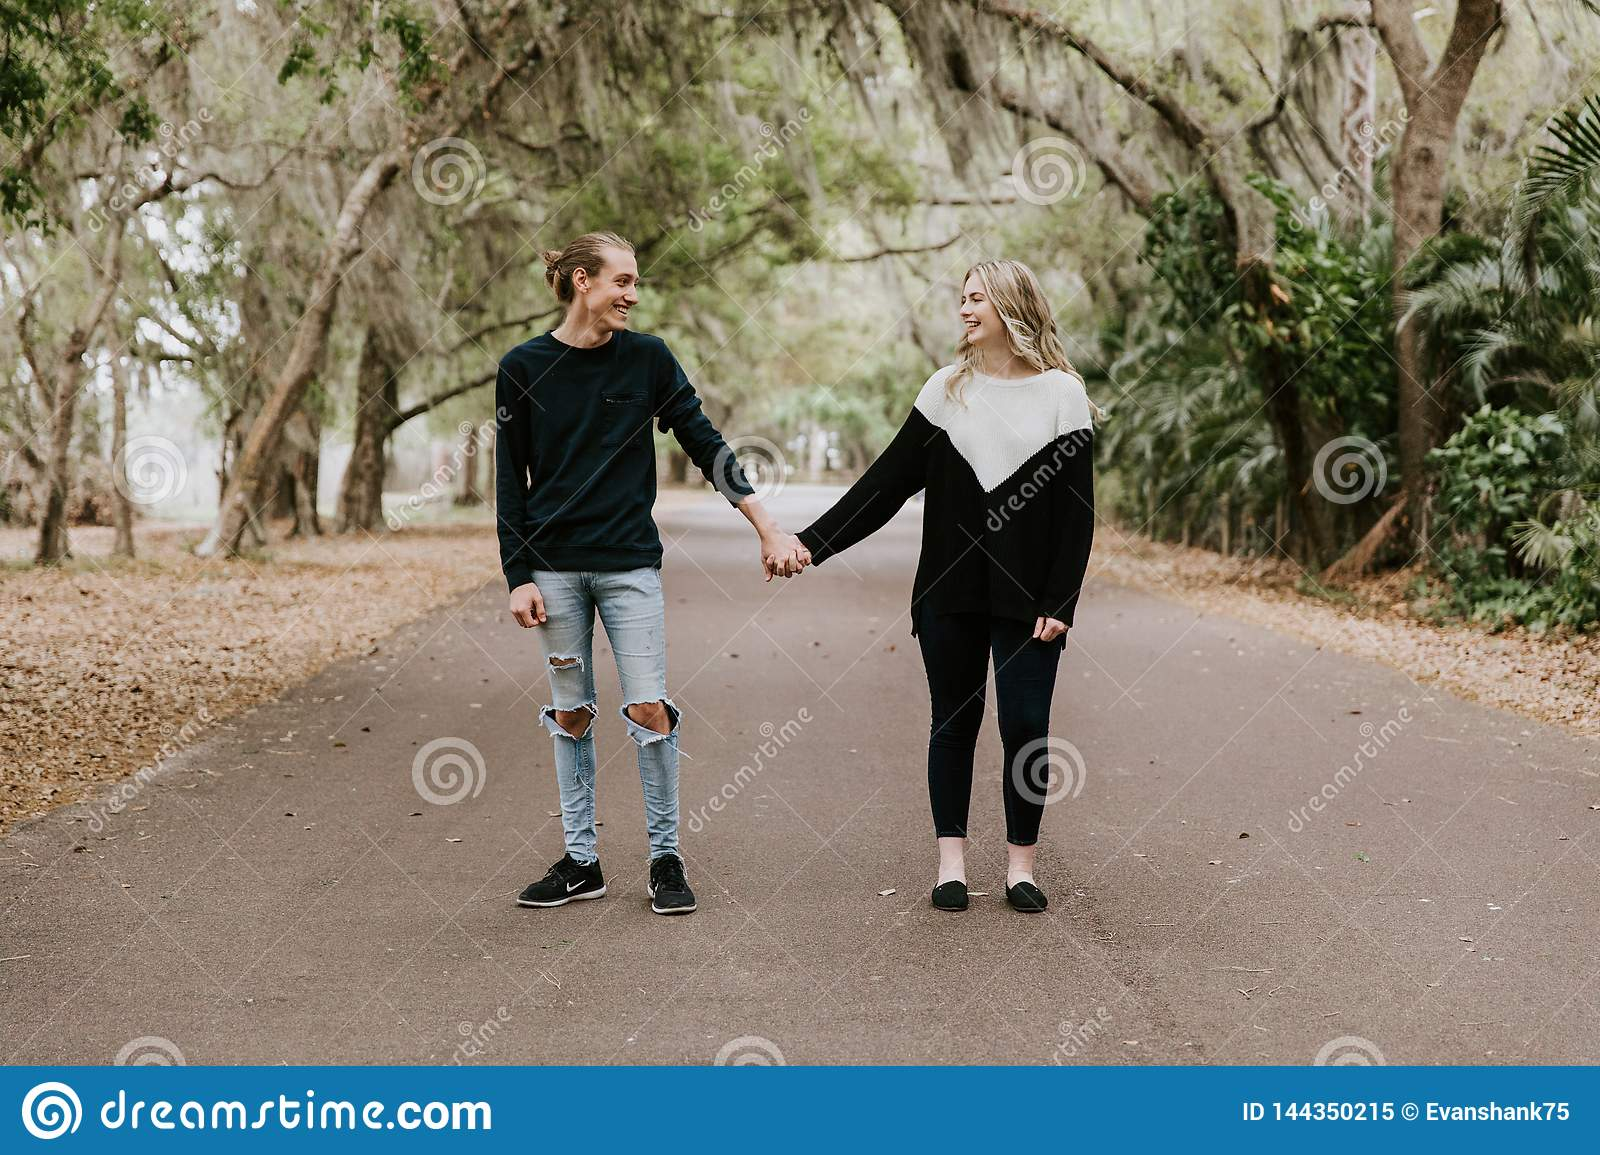 Cute Young Happy Loving Couple Walking Down an Old Abandoned Road with Mossy Oak Trees Overhanging